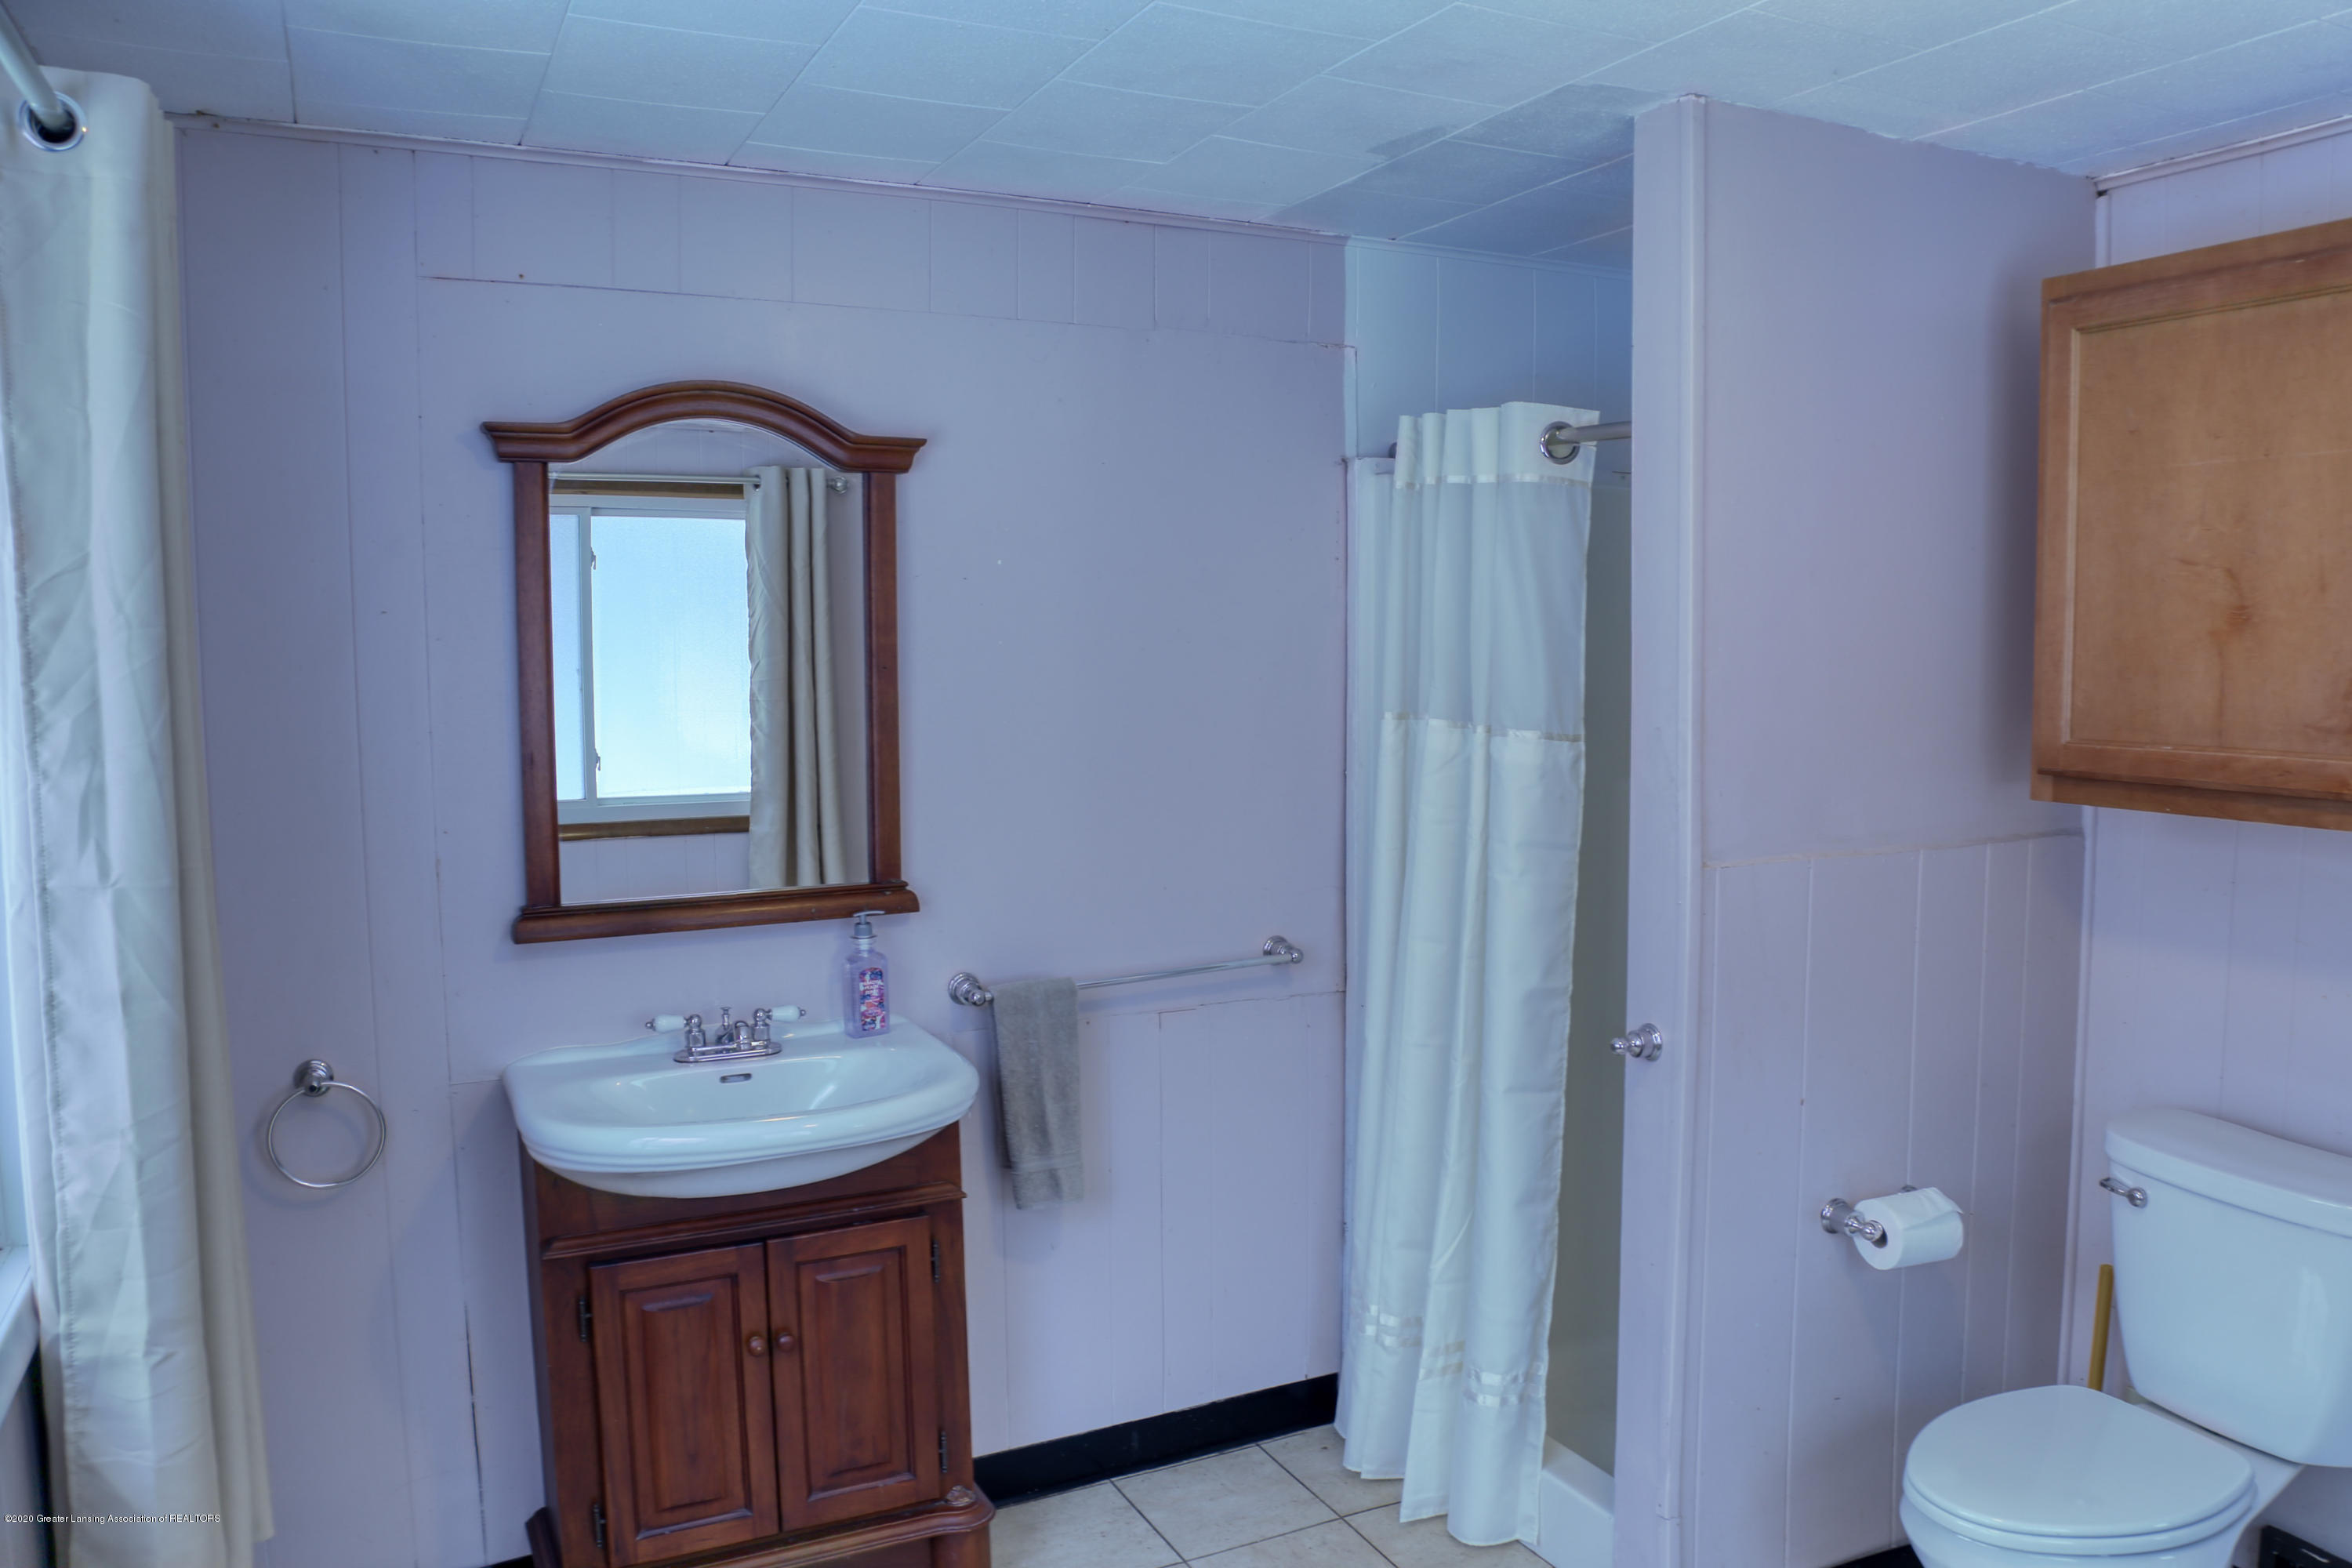 234 N Hagadorn Rd - bathroom - 23